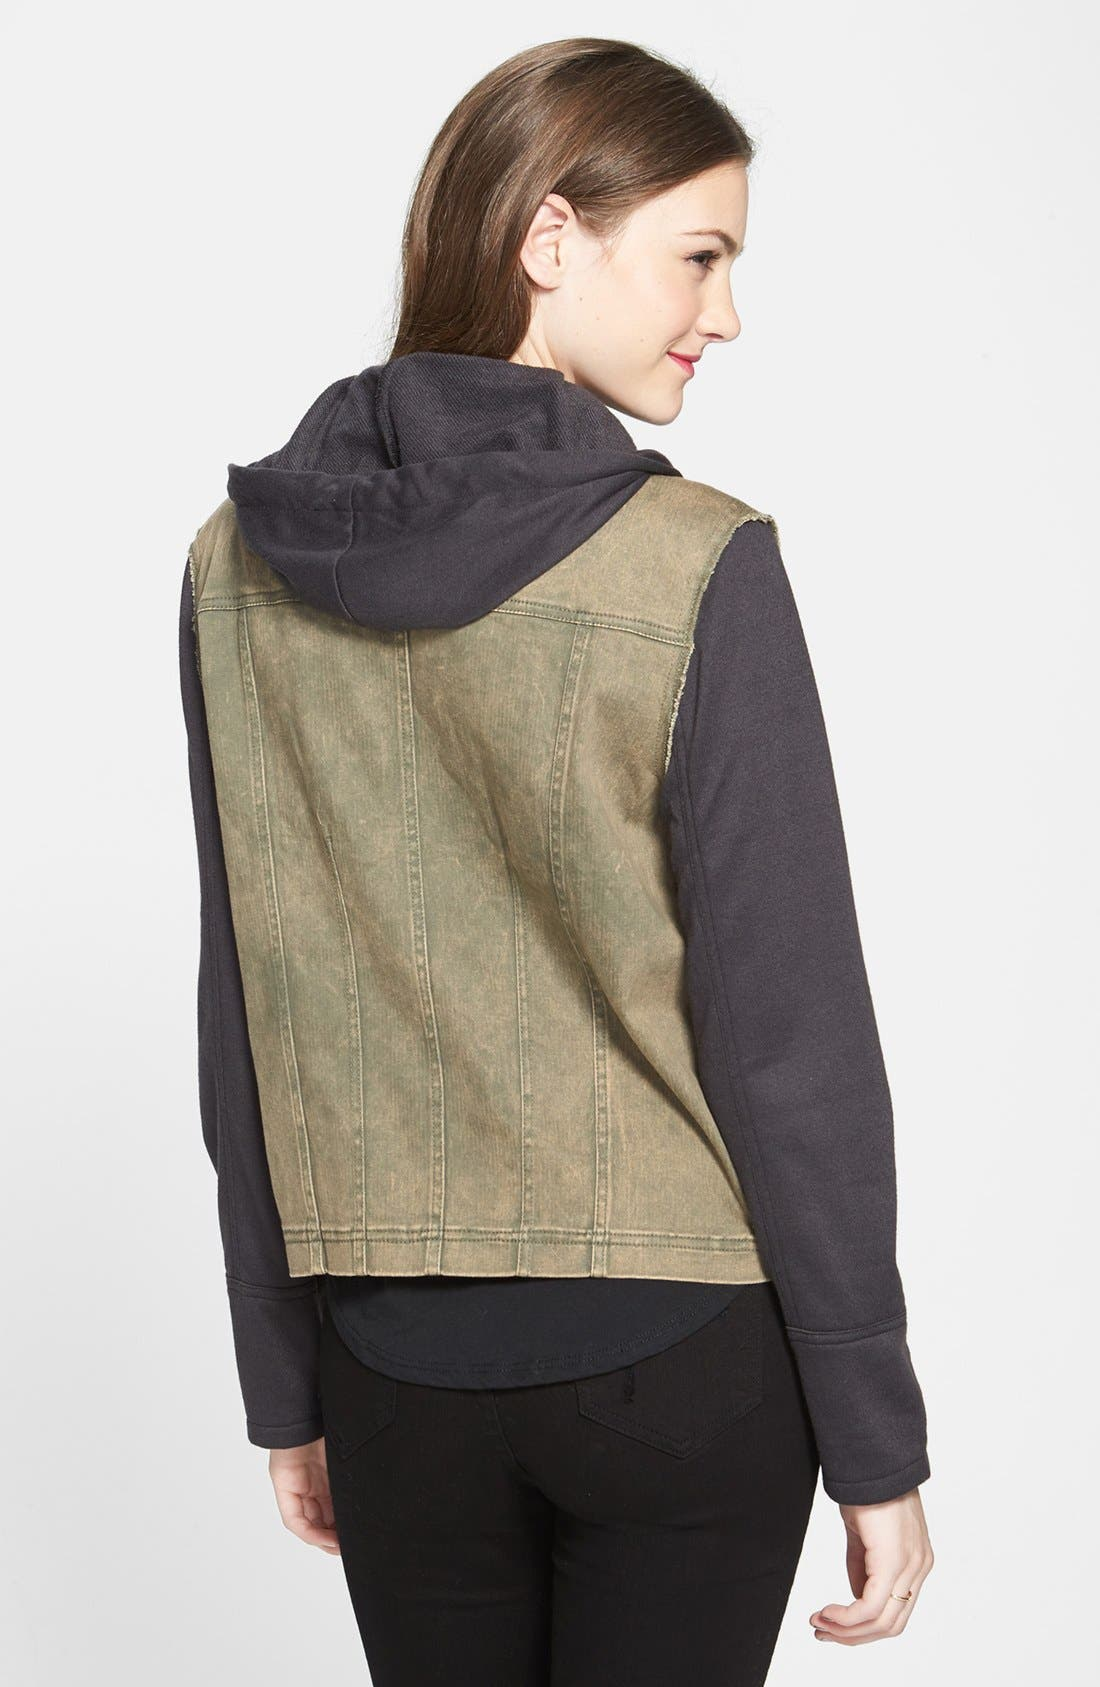 Contrast Sleeve Twill Jacket,                             Alternate thumbnail 2, color,                             Olive/ Black